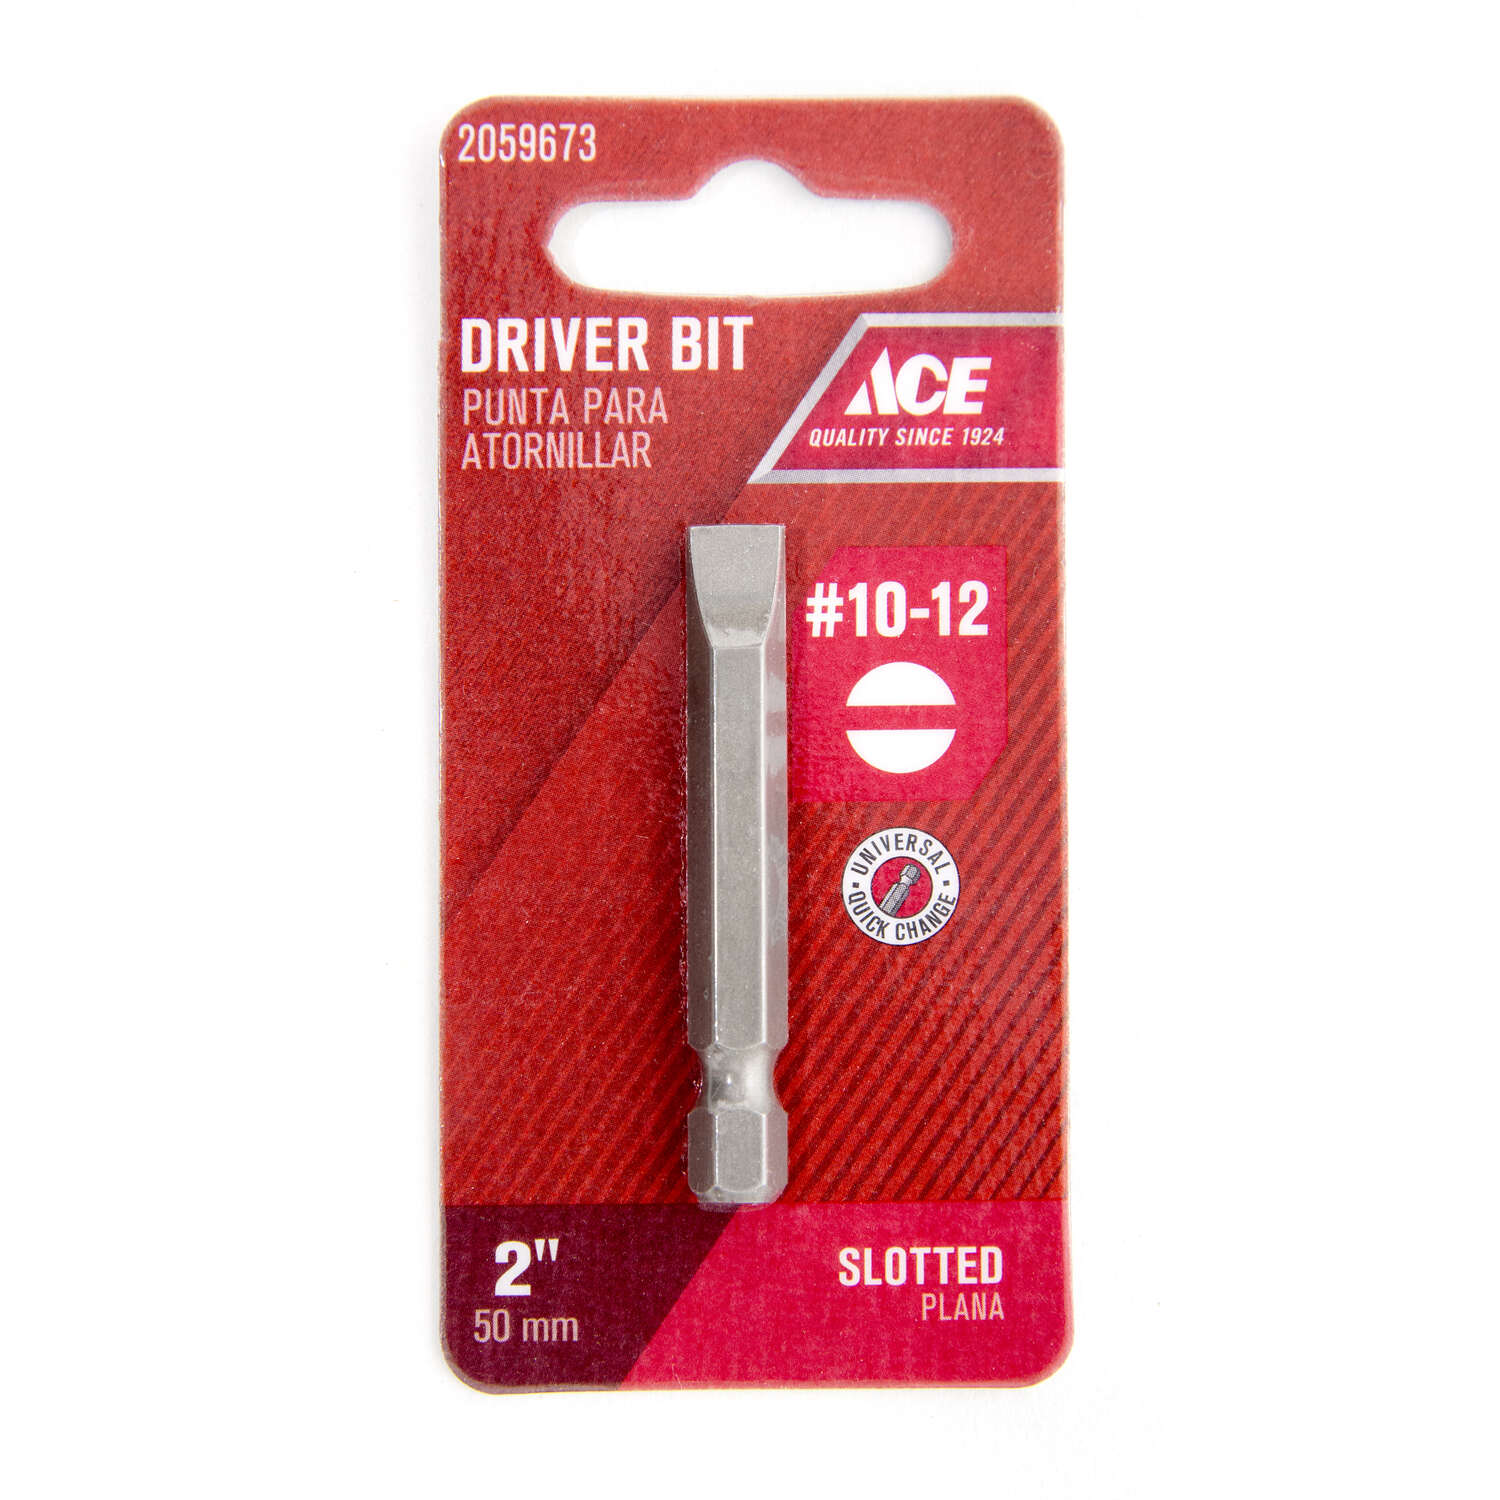 Ace  Slotted  #10-12 in.  x 2 in. L Screwdriver Bit  S2 Tool Steel  1 pc.